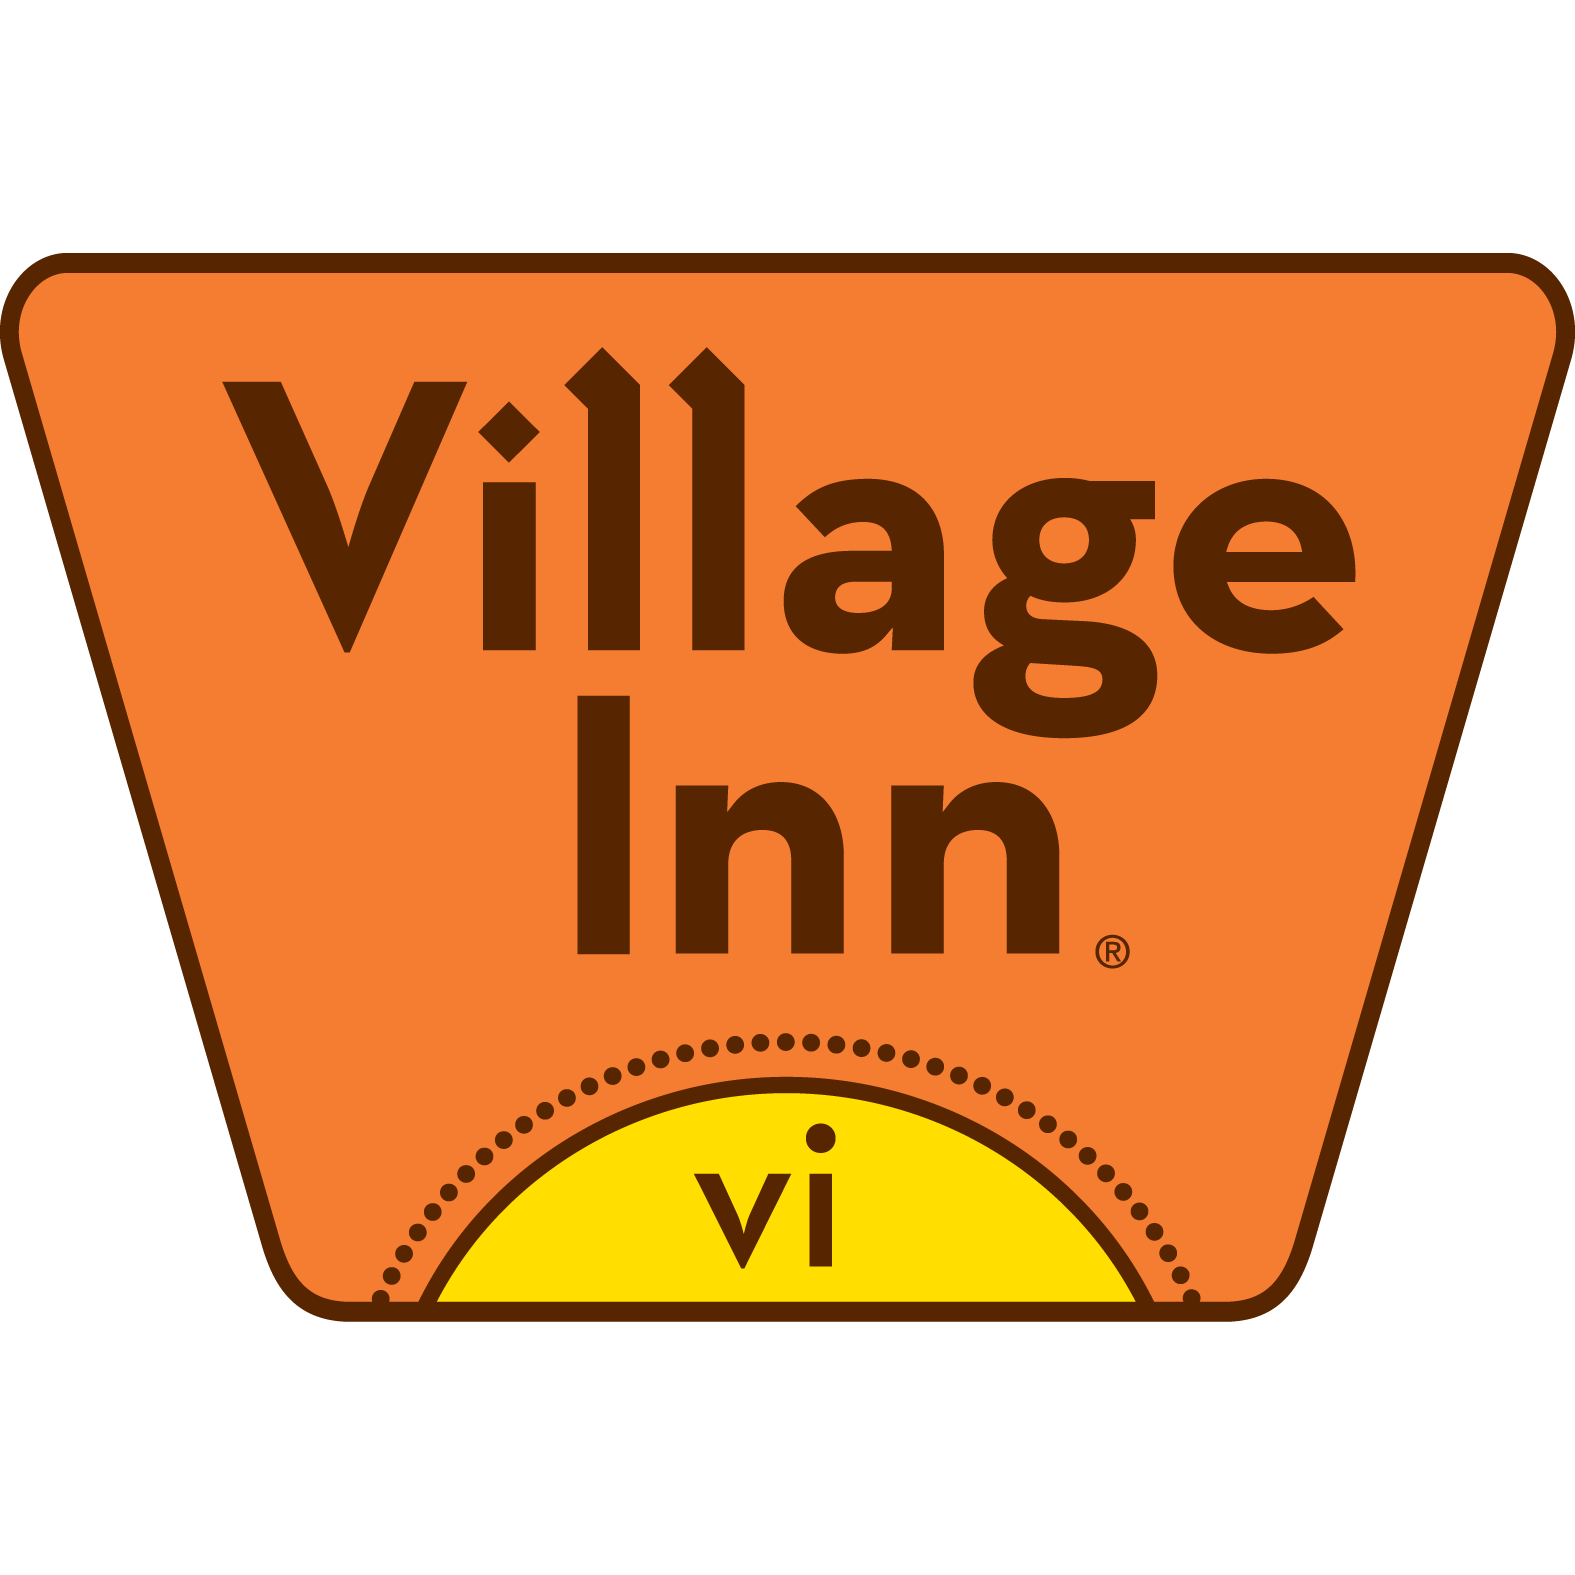 Village Inn - Omaha, NE 68114 - (402)384-9950 | ShowMeLocal.com